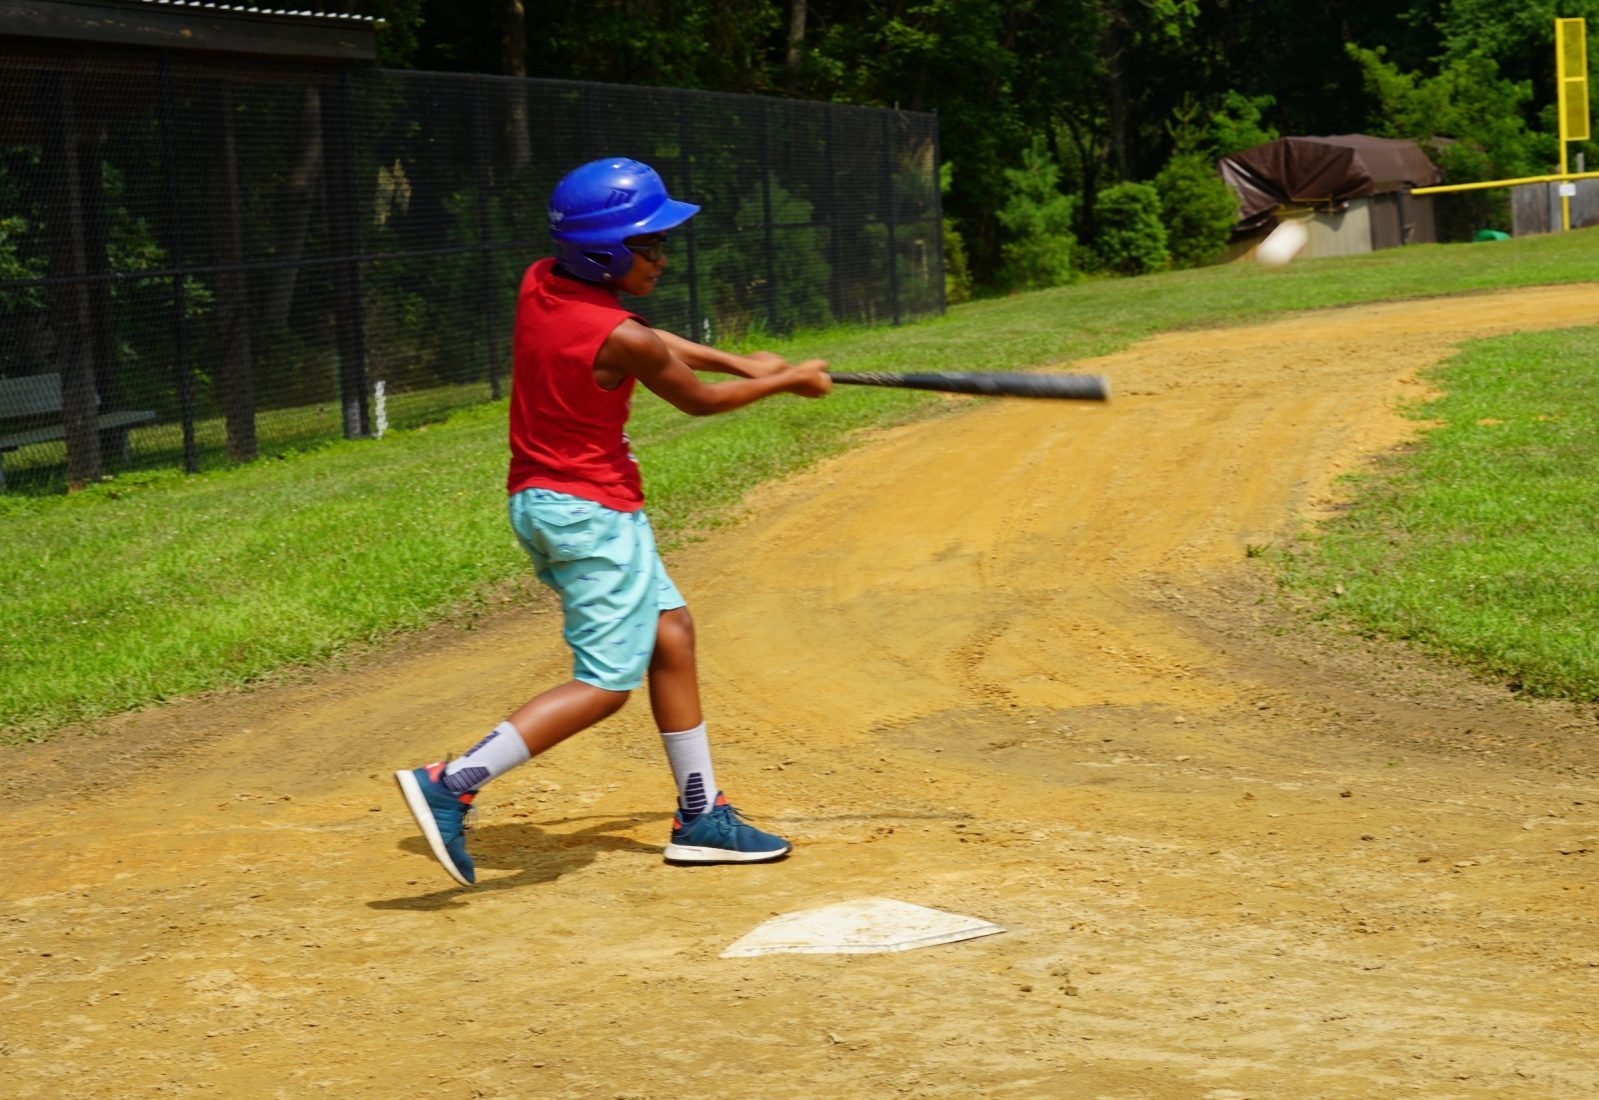 A young boy swinging a bat